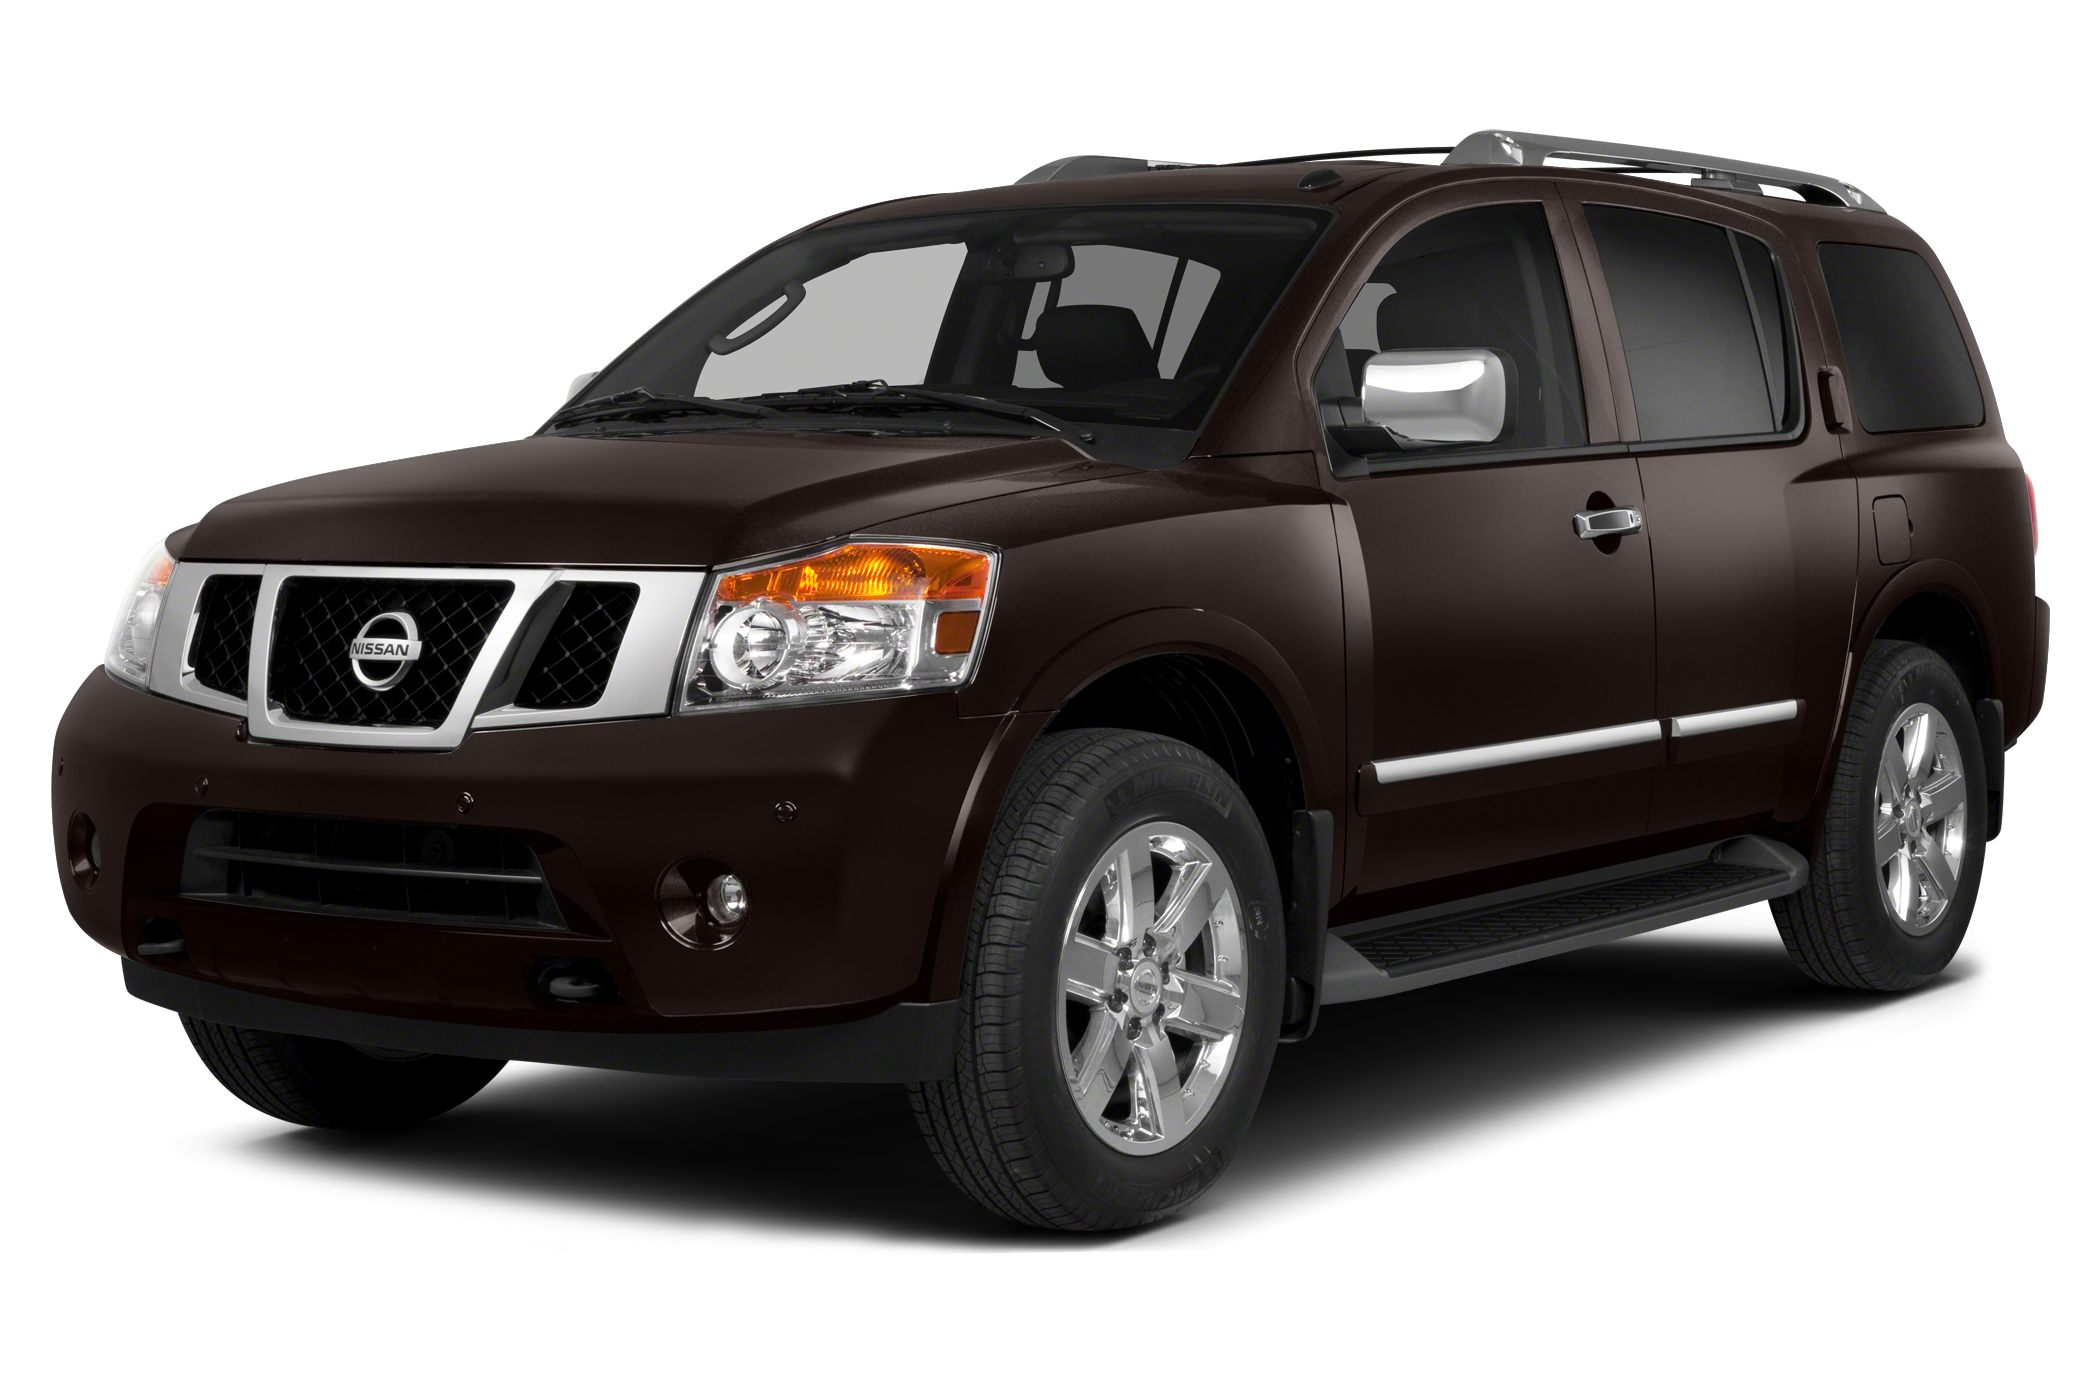 2014 Nissan Armada SV SUV for sale in Las Vegas for $46,200 with 5 miles.